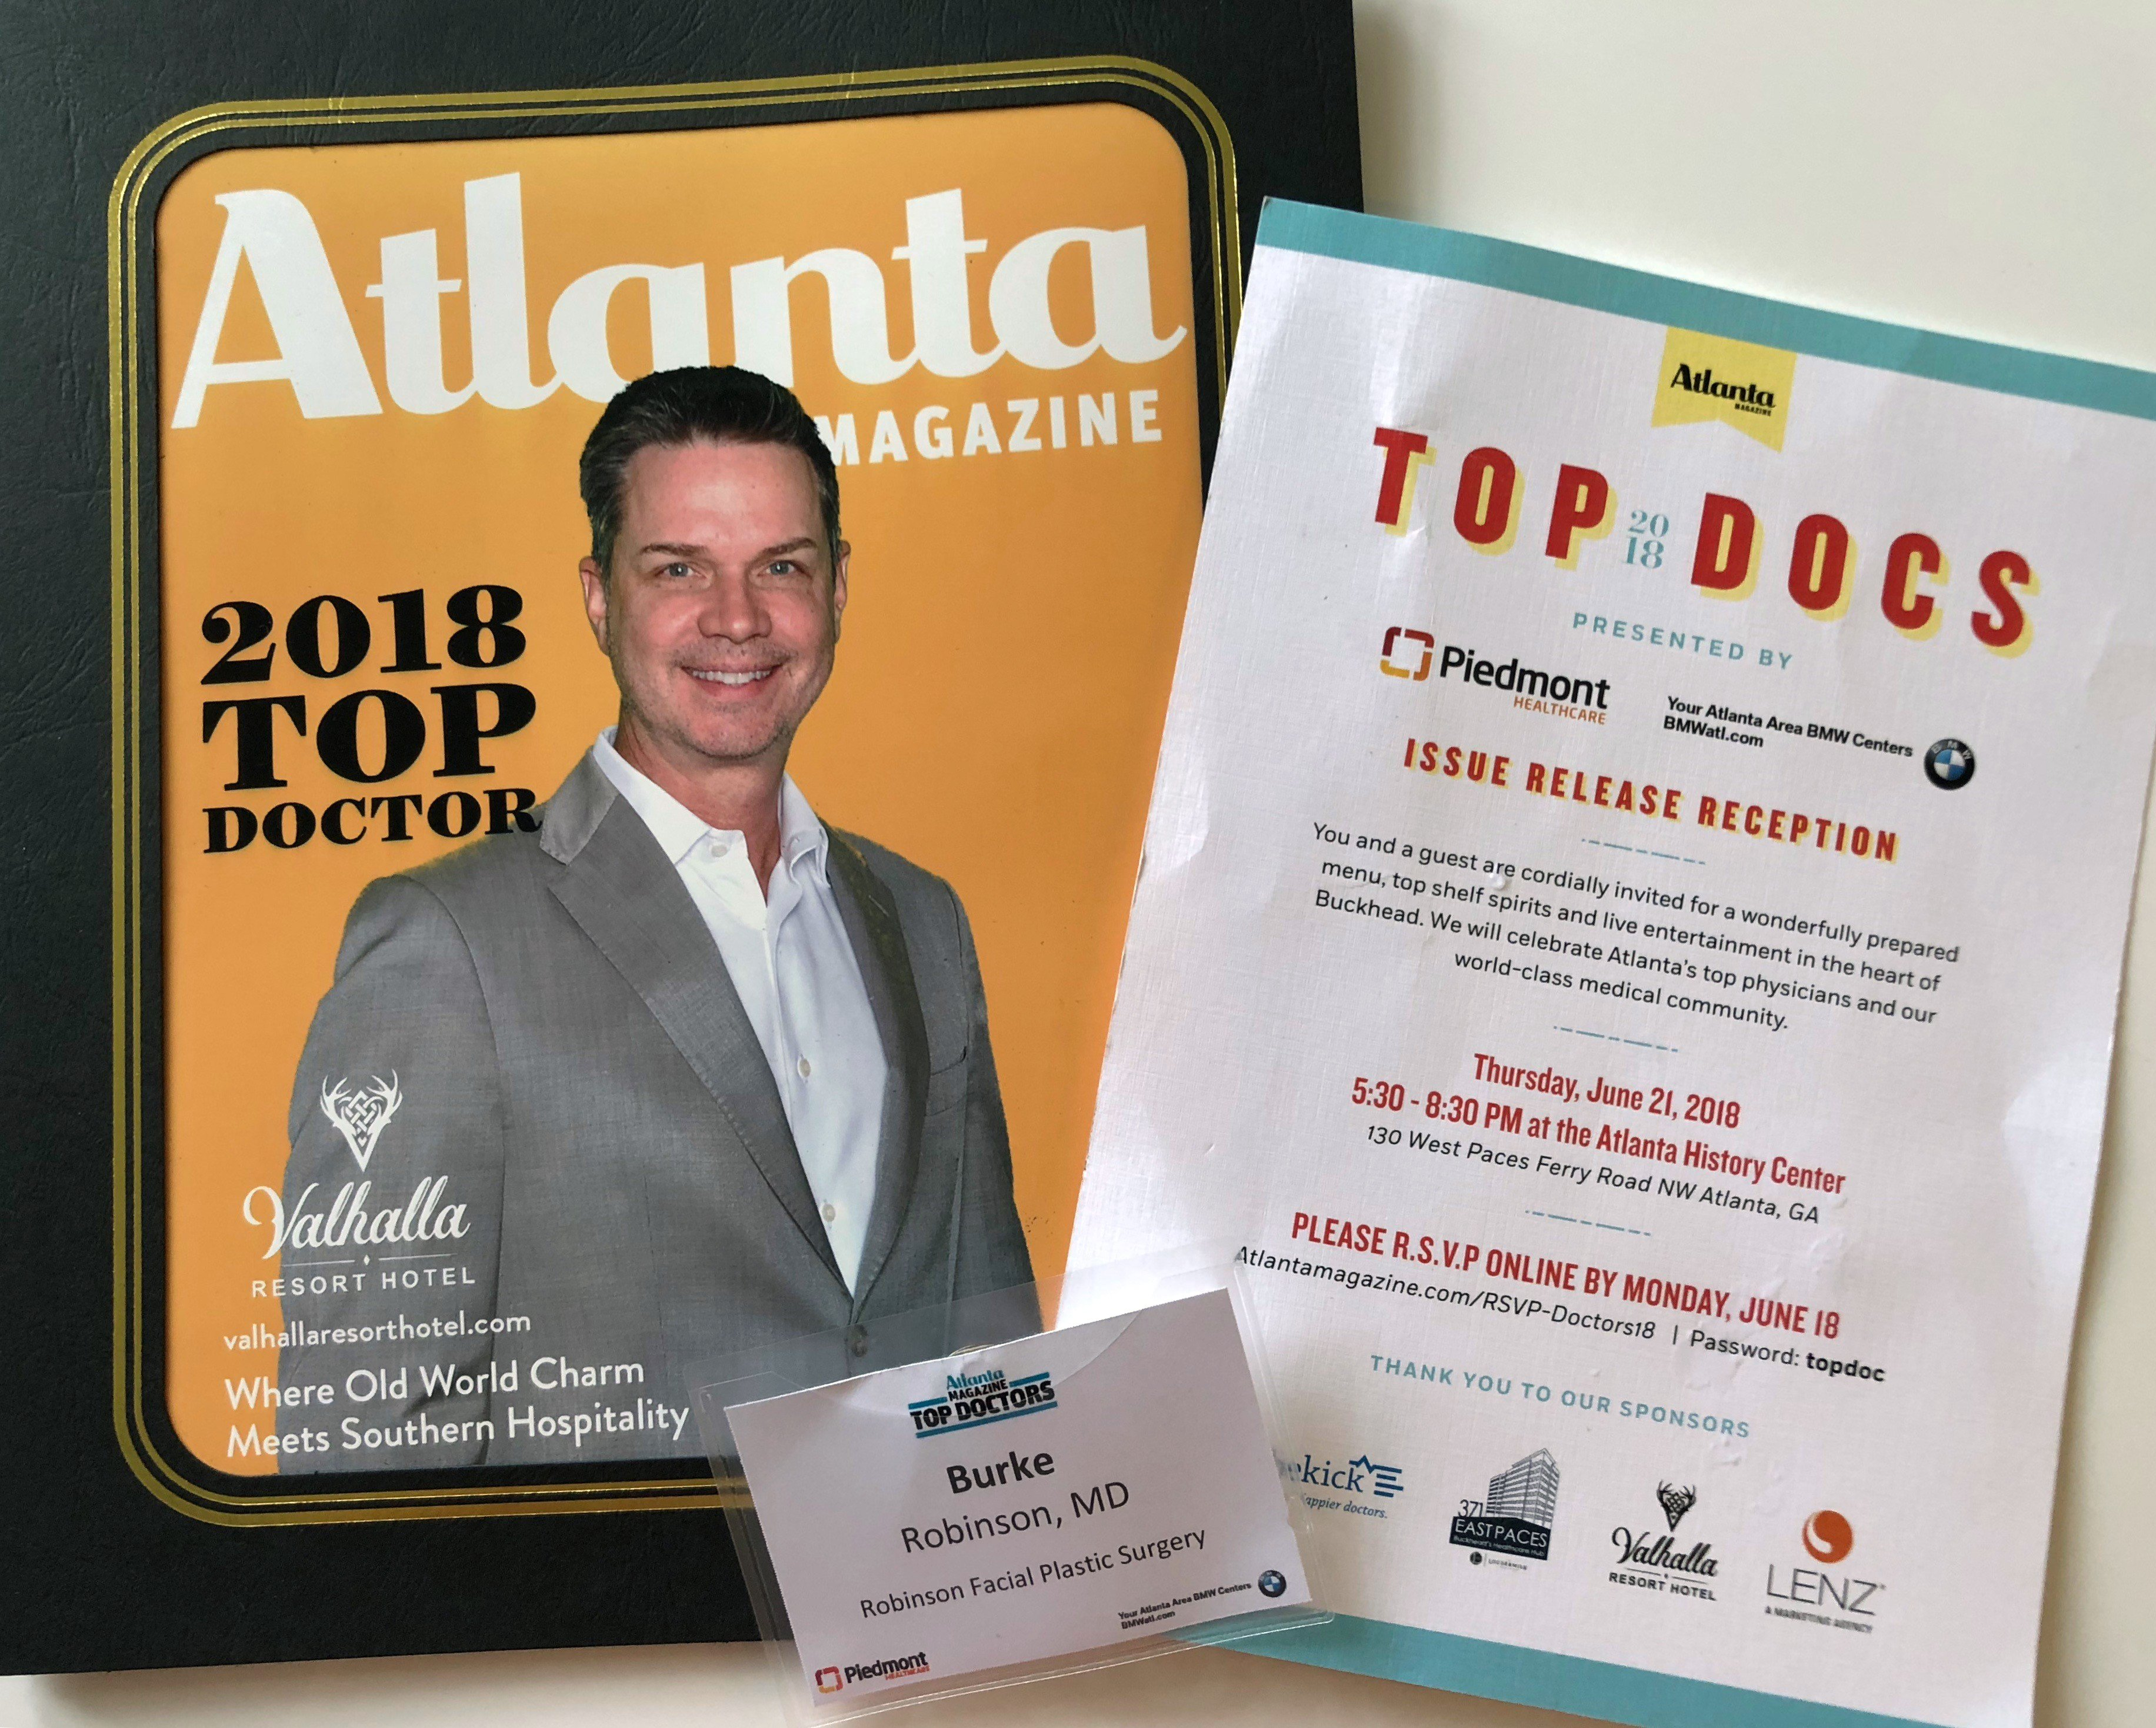 Atlanta Magazine Top Doctor 2018